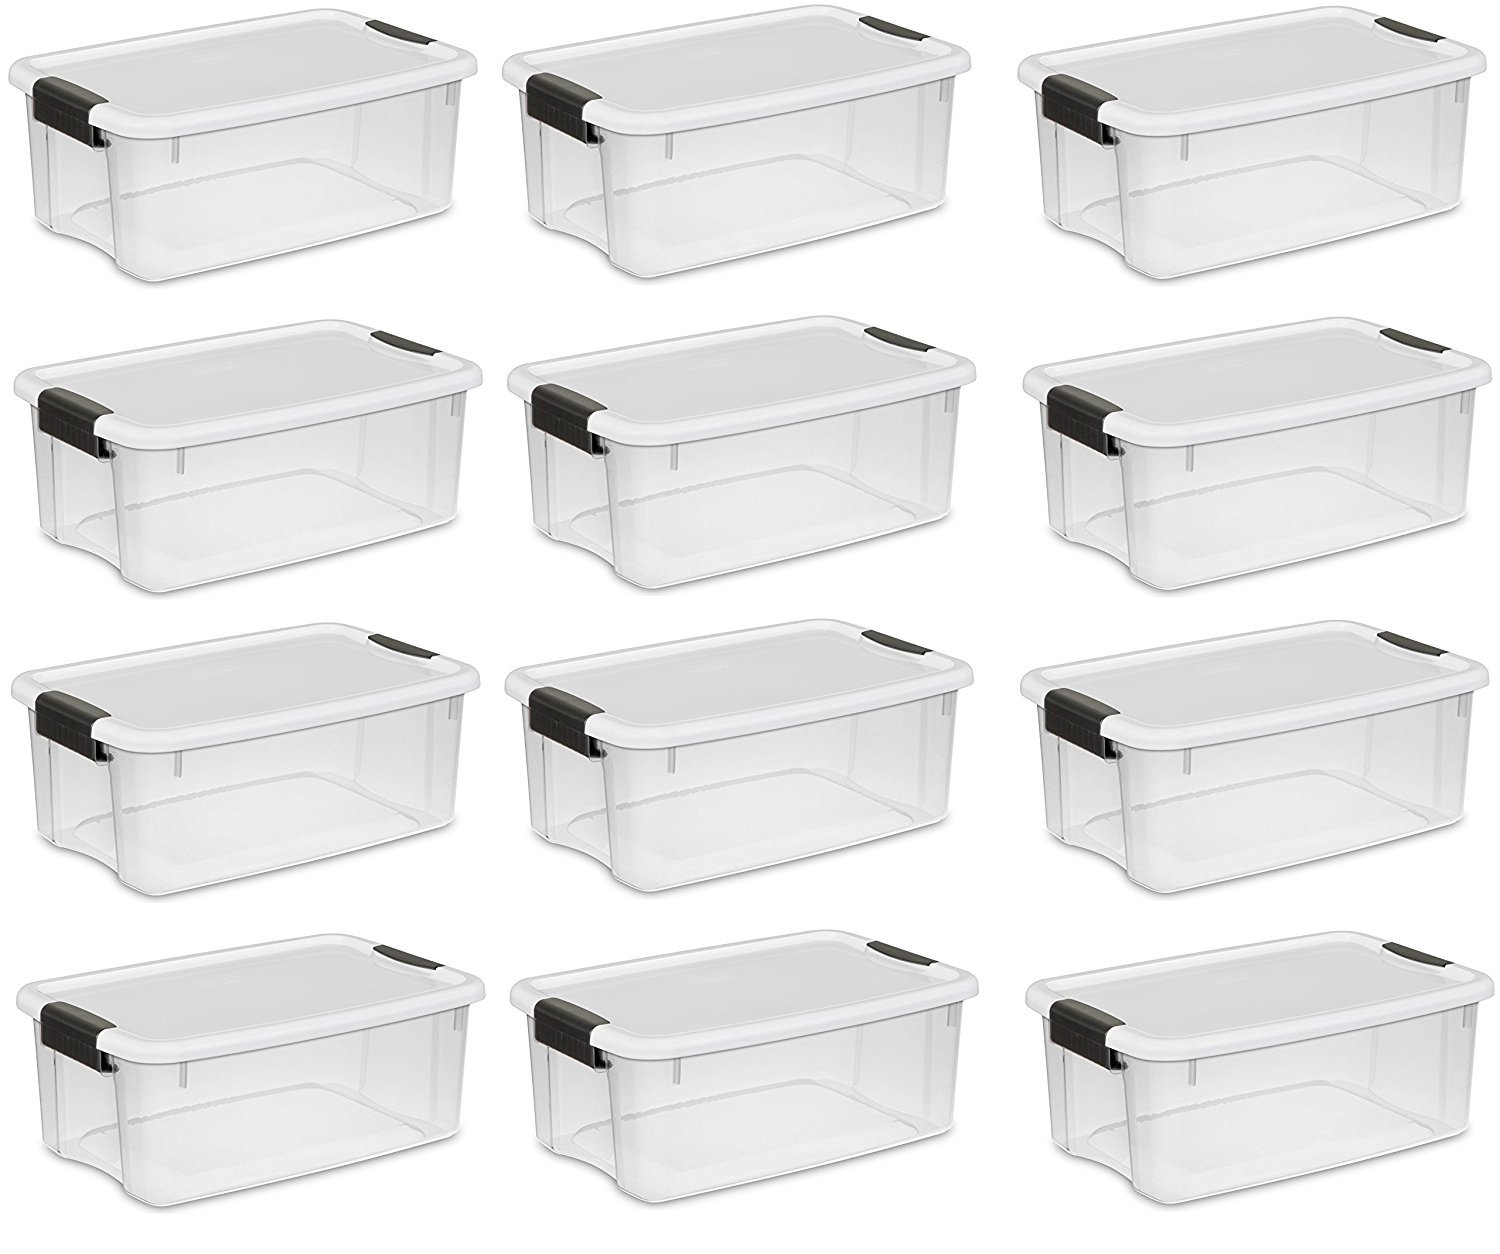 Sterilite 18 Quart/17 Liter Ultra Latch Box, Clear with a White Lid and Black Latches, (12-Pack)